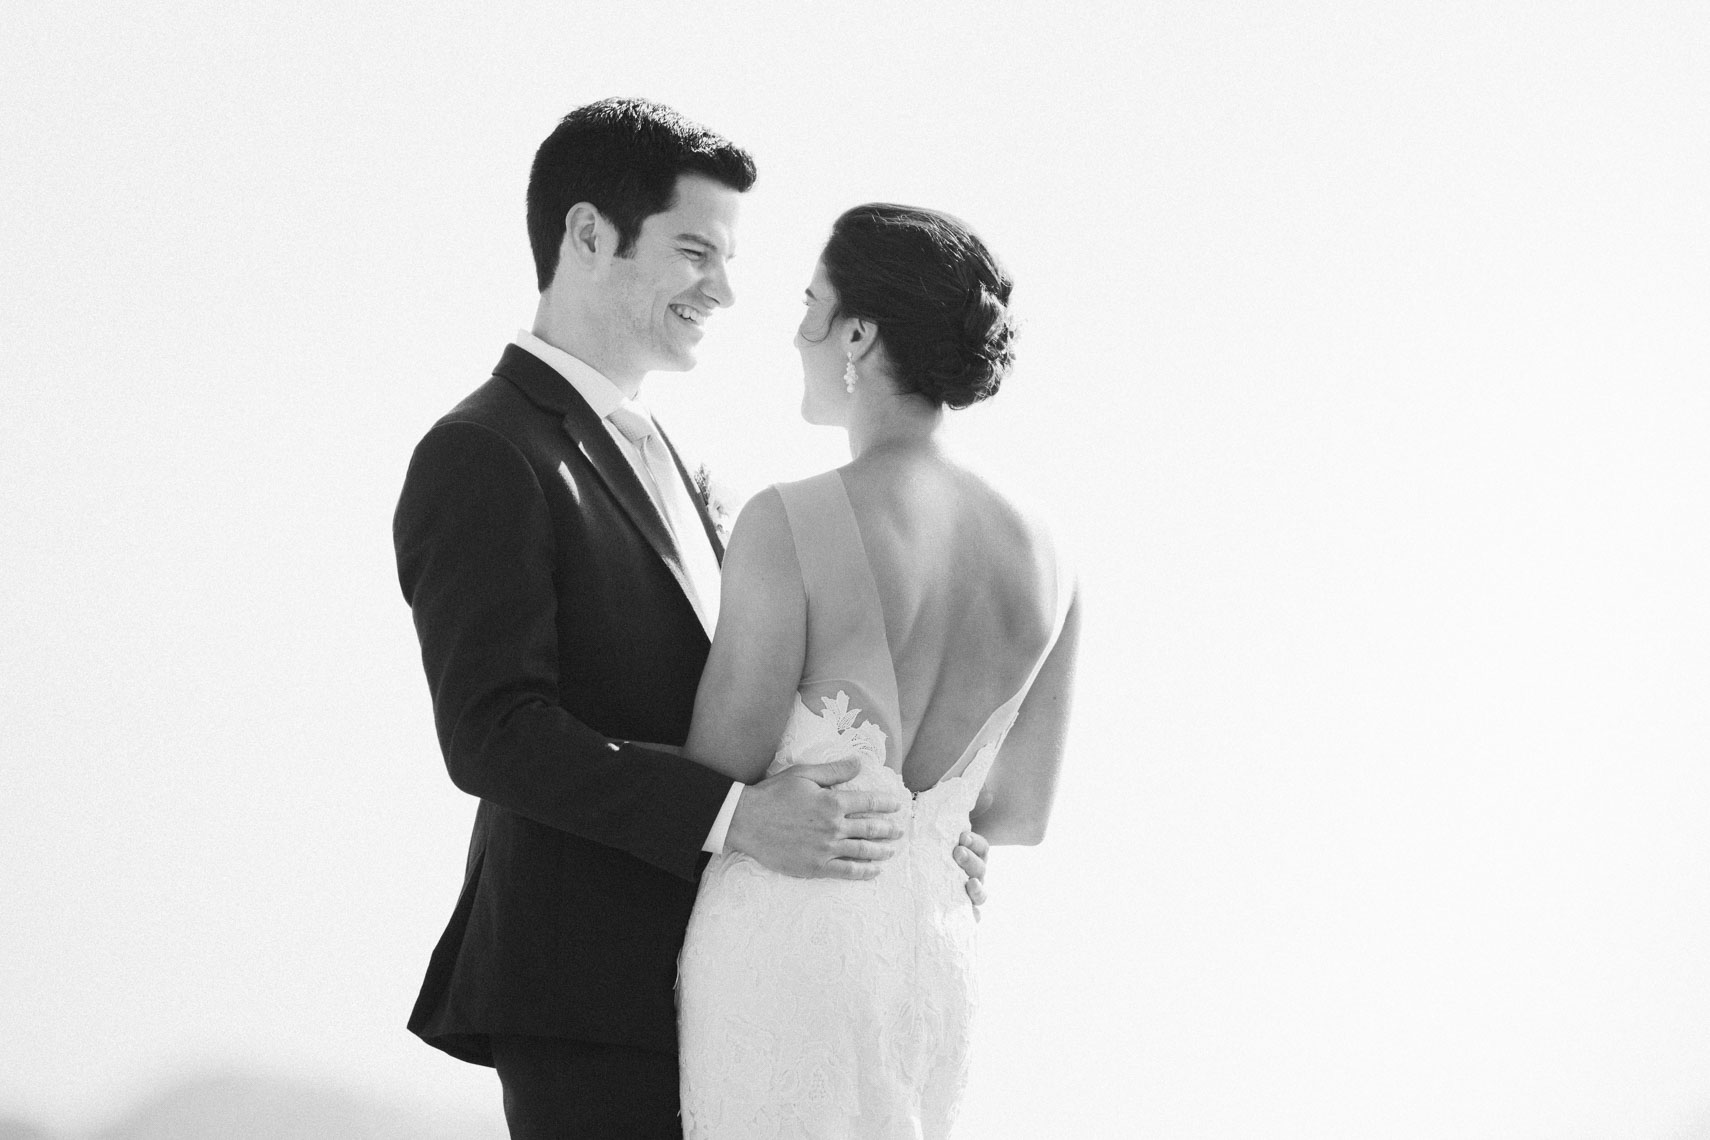 Black and white wedding photography from vancouver and whistler BC